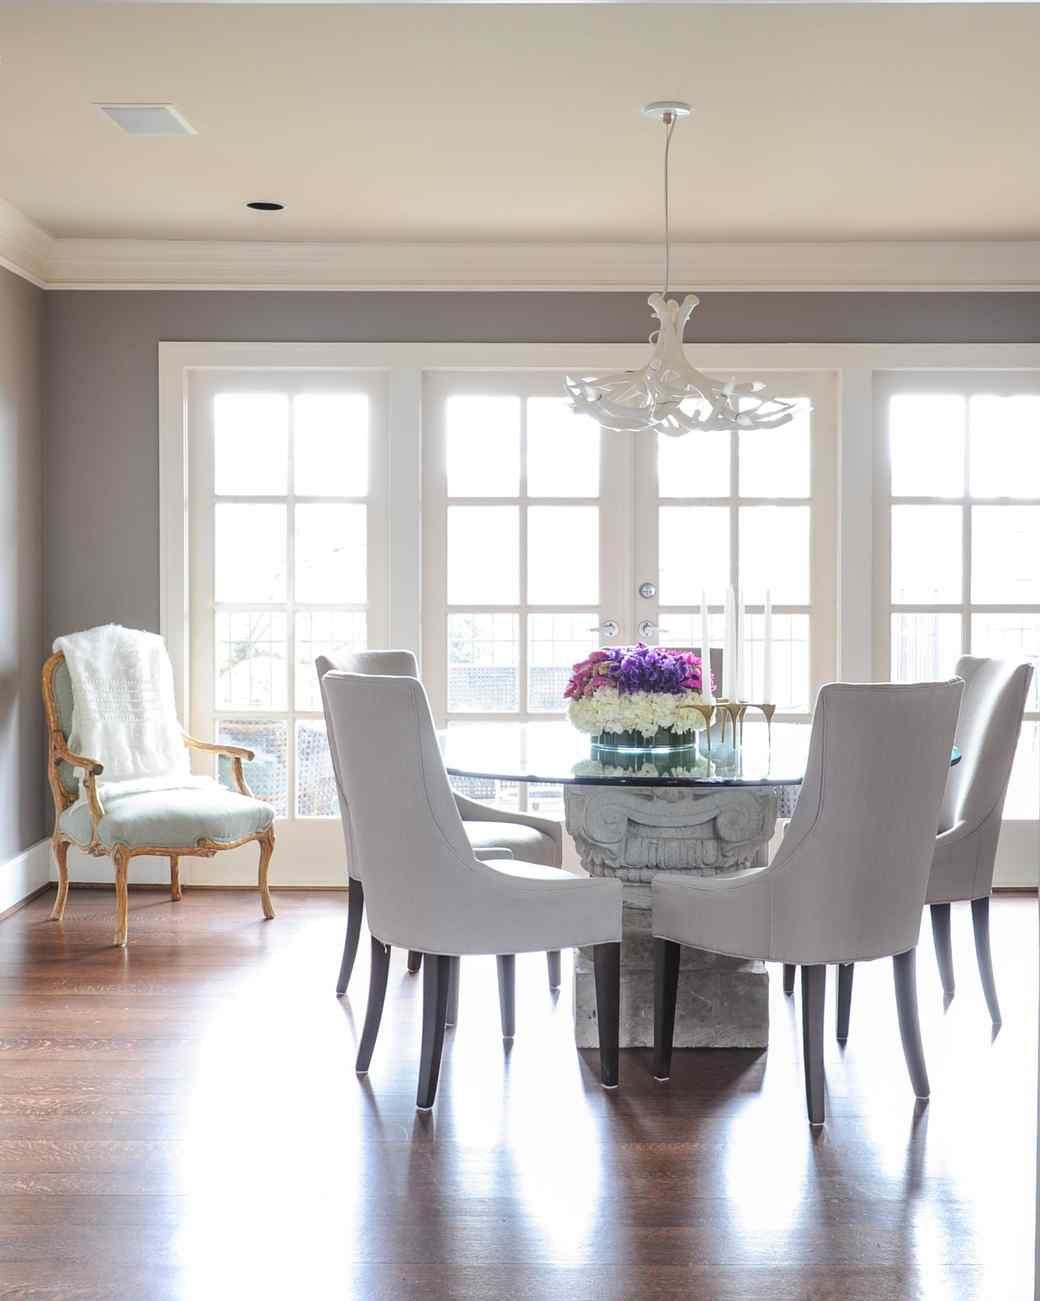 Feast Your Eyes: Gorgeous Dining Room Decorating Ideas | Room ...